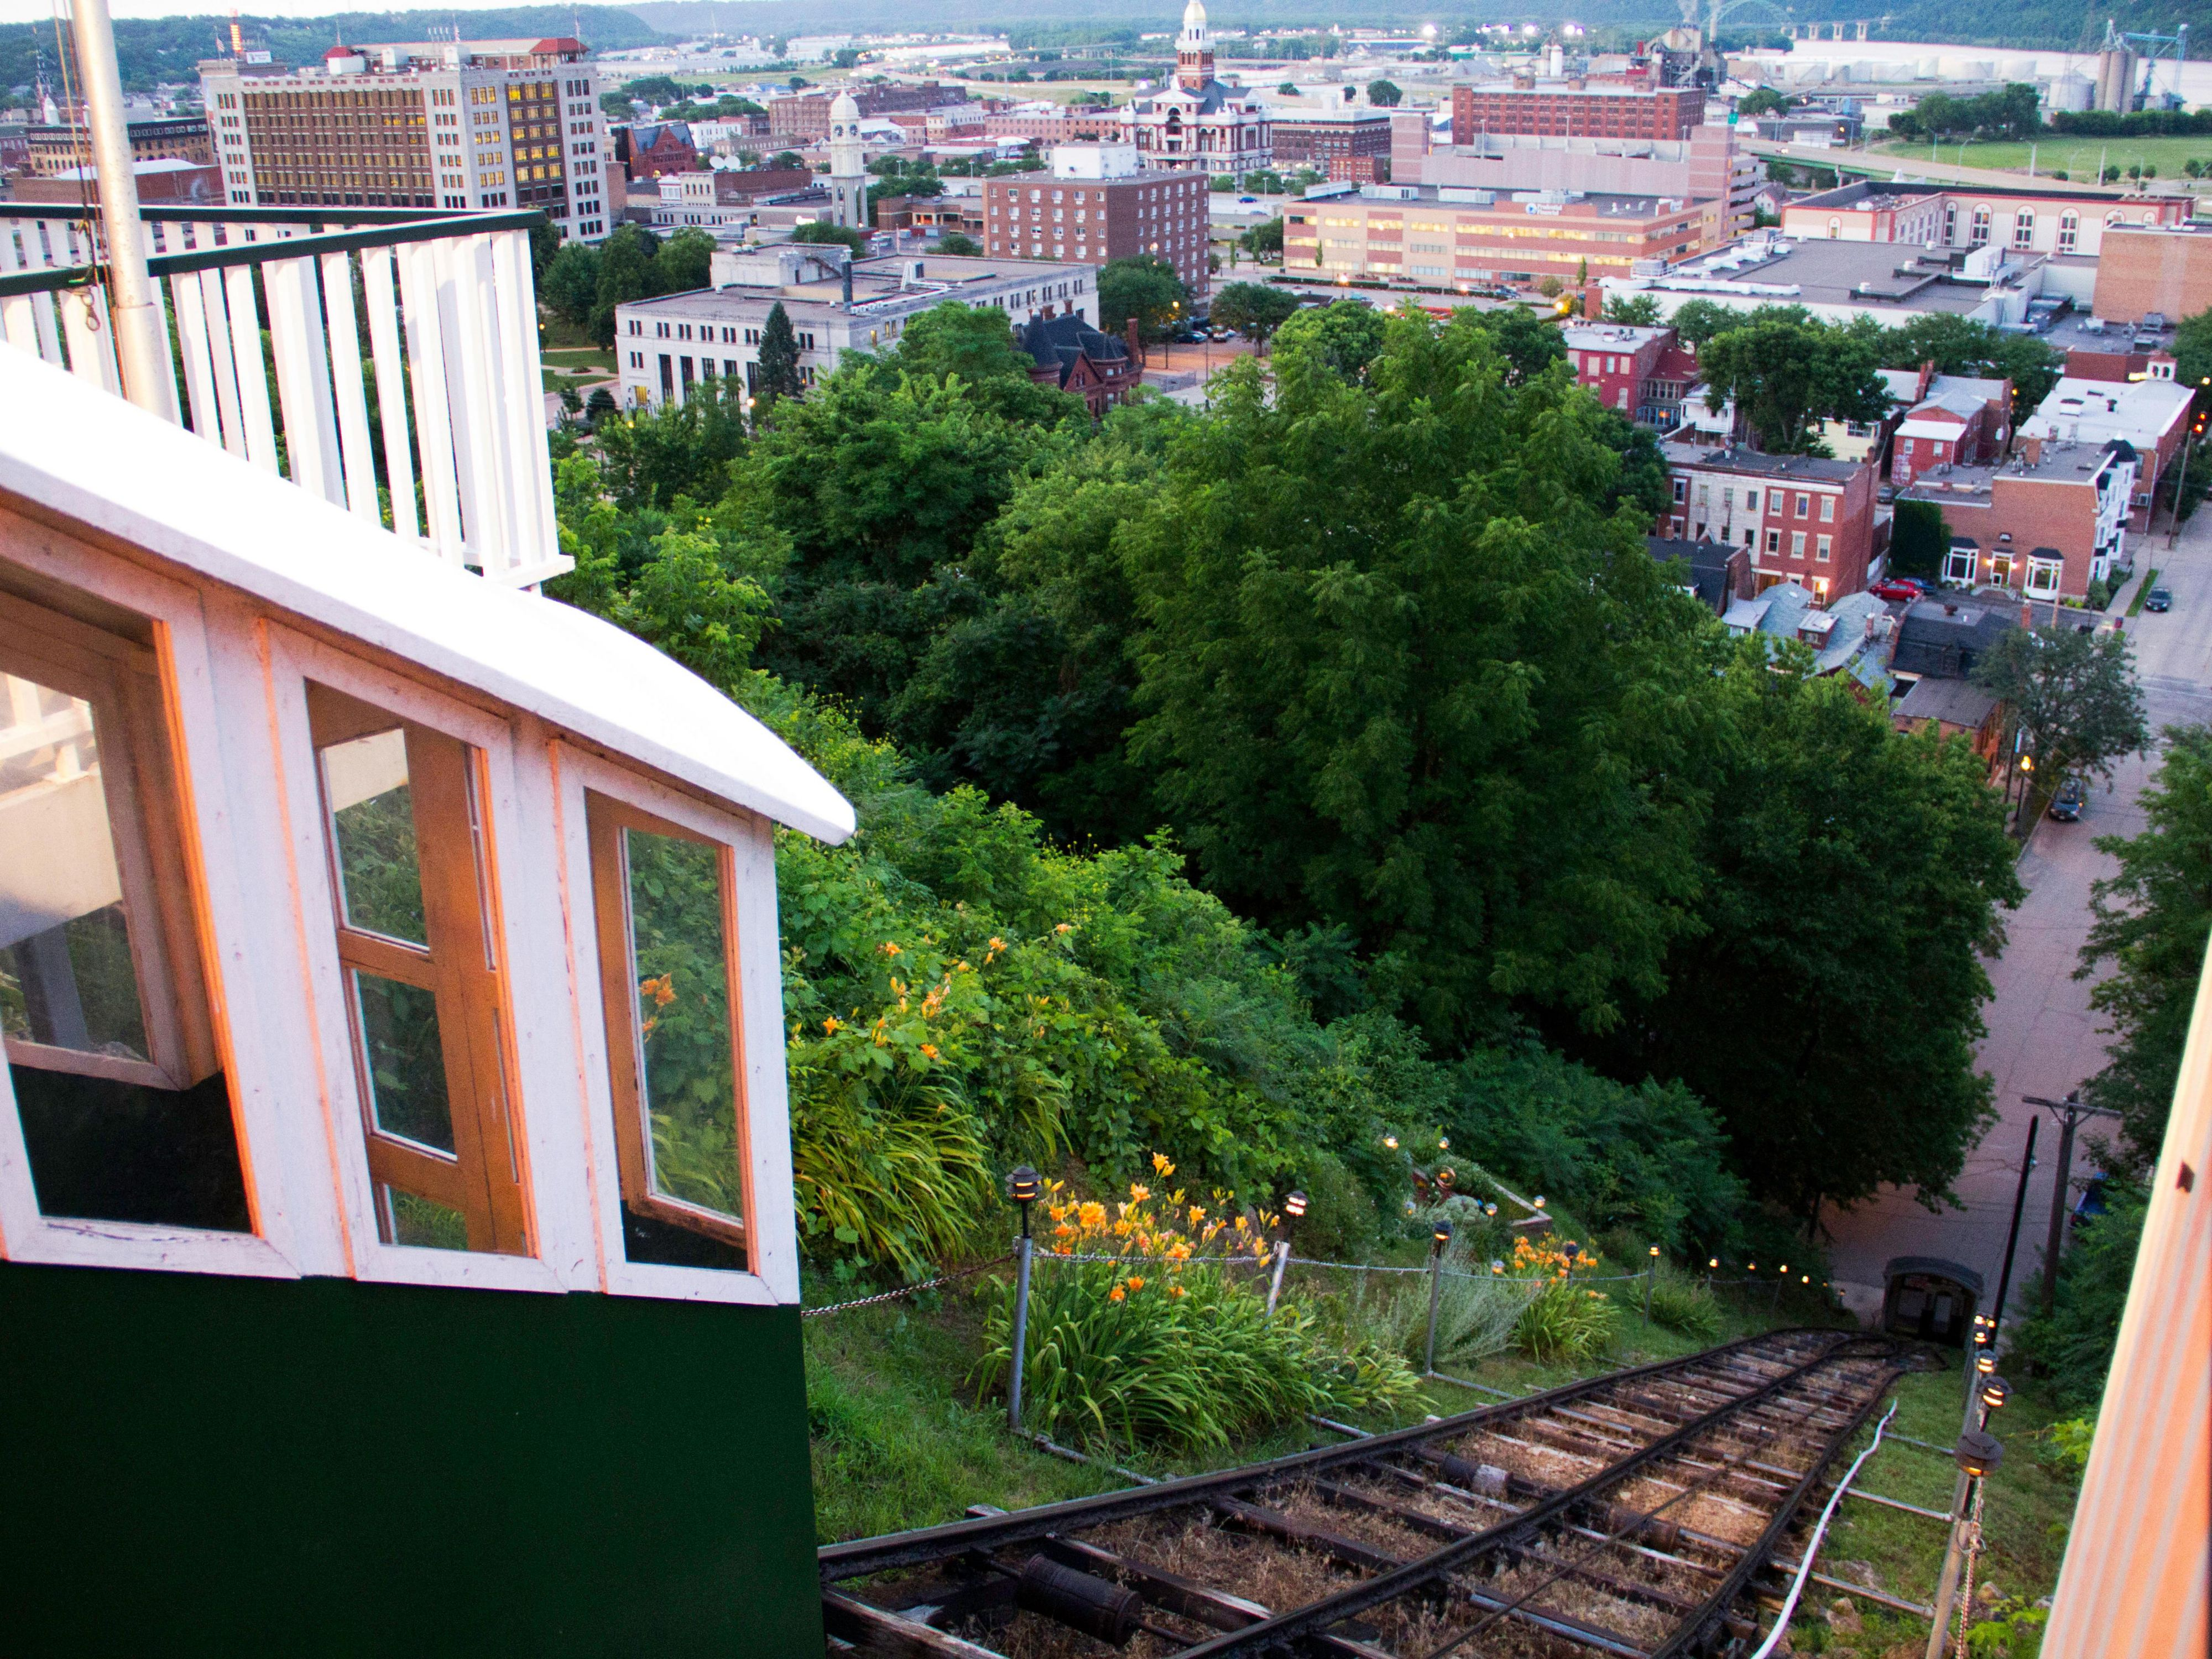 Enjoy the view from the top of the Fenelon Place Elevator